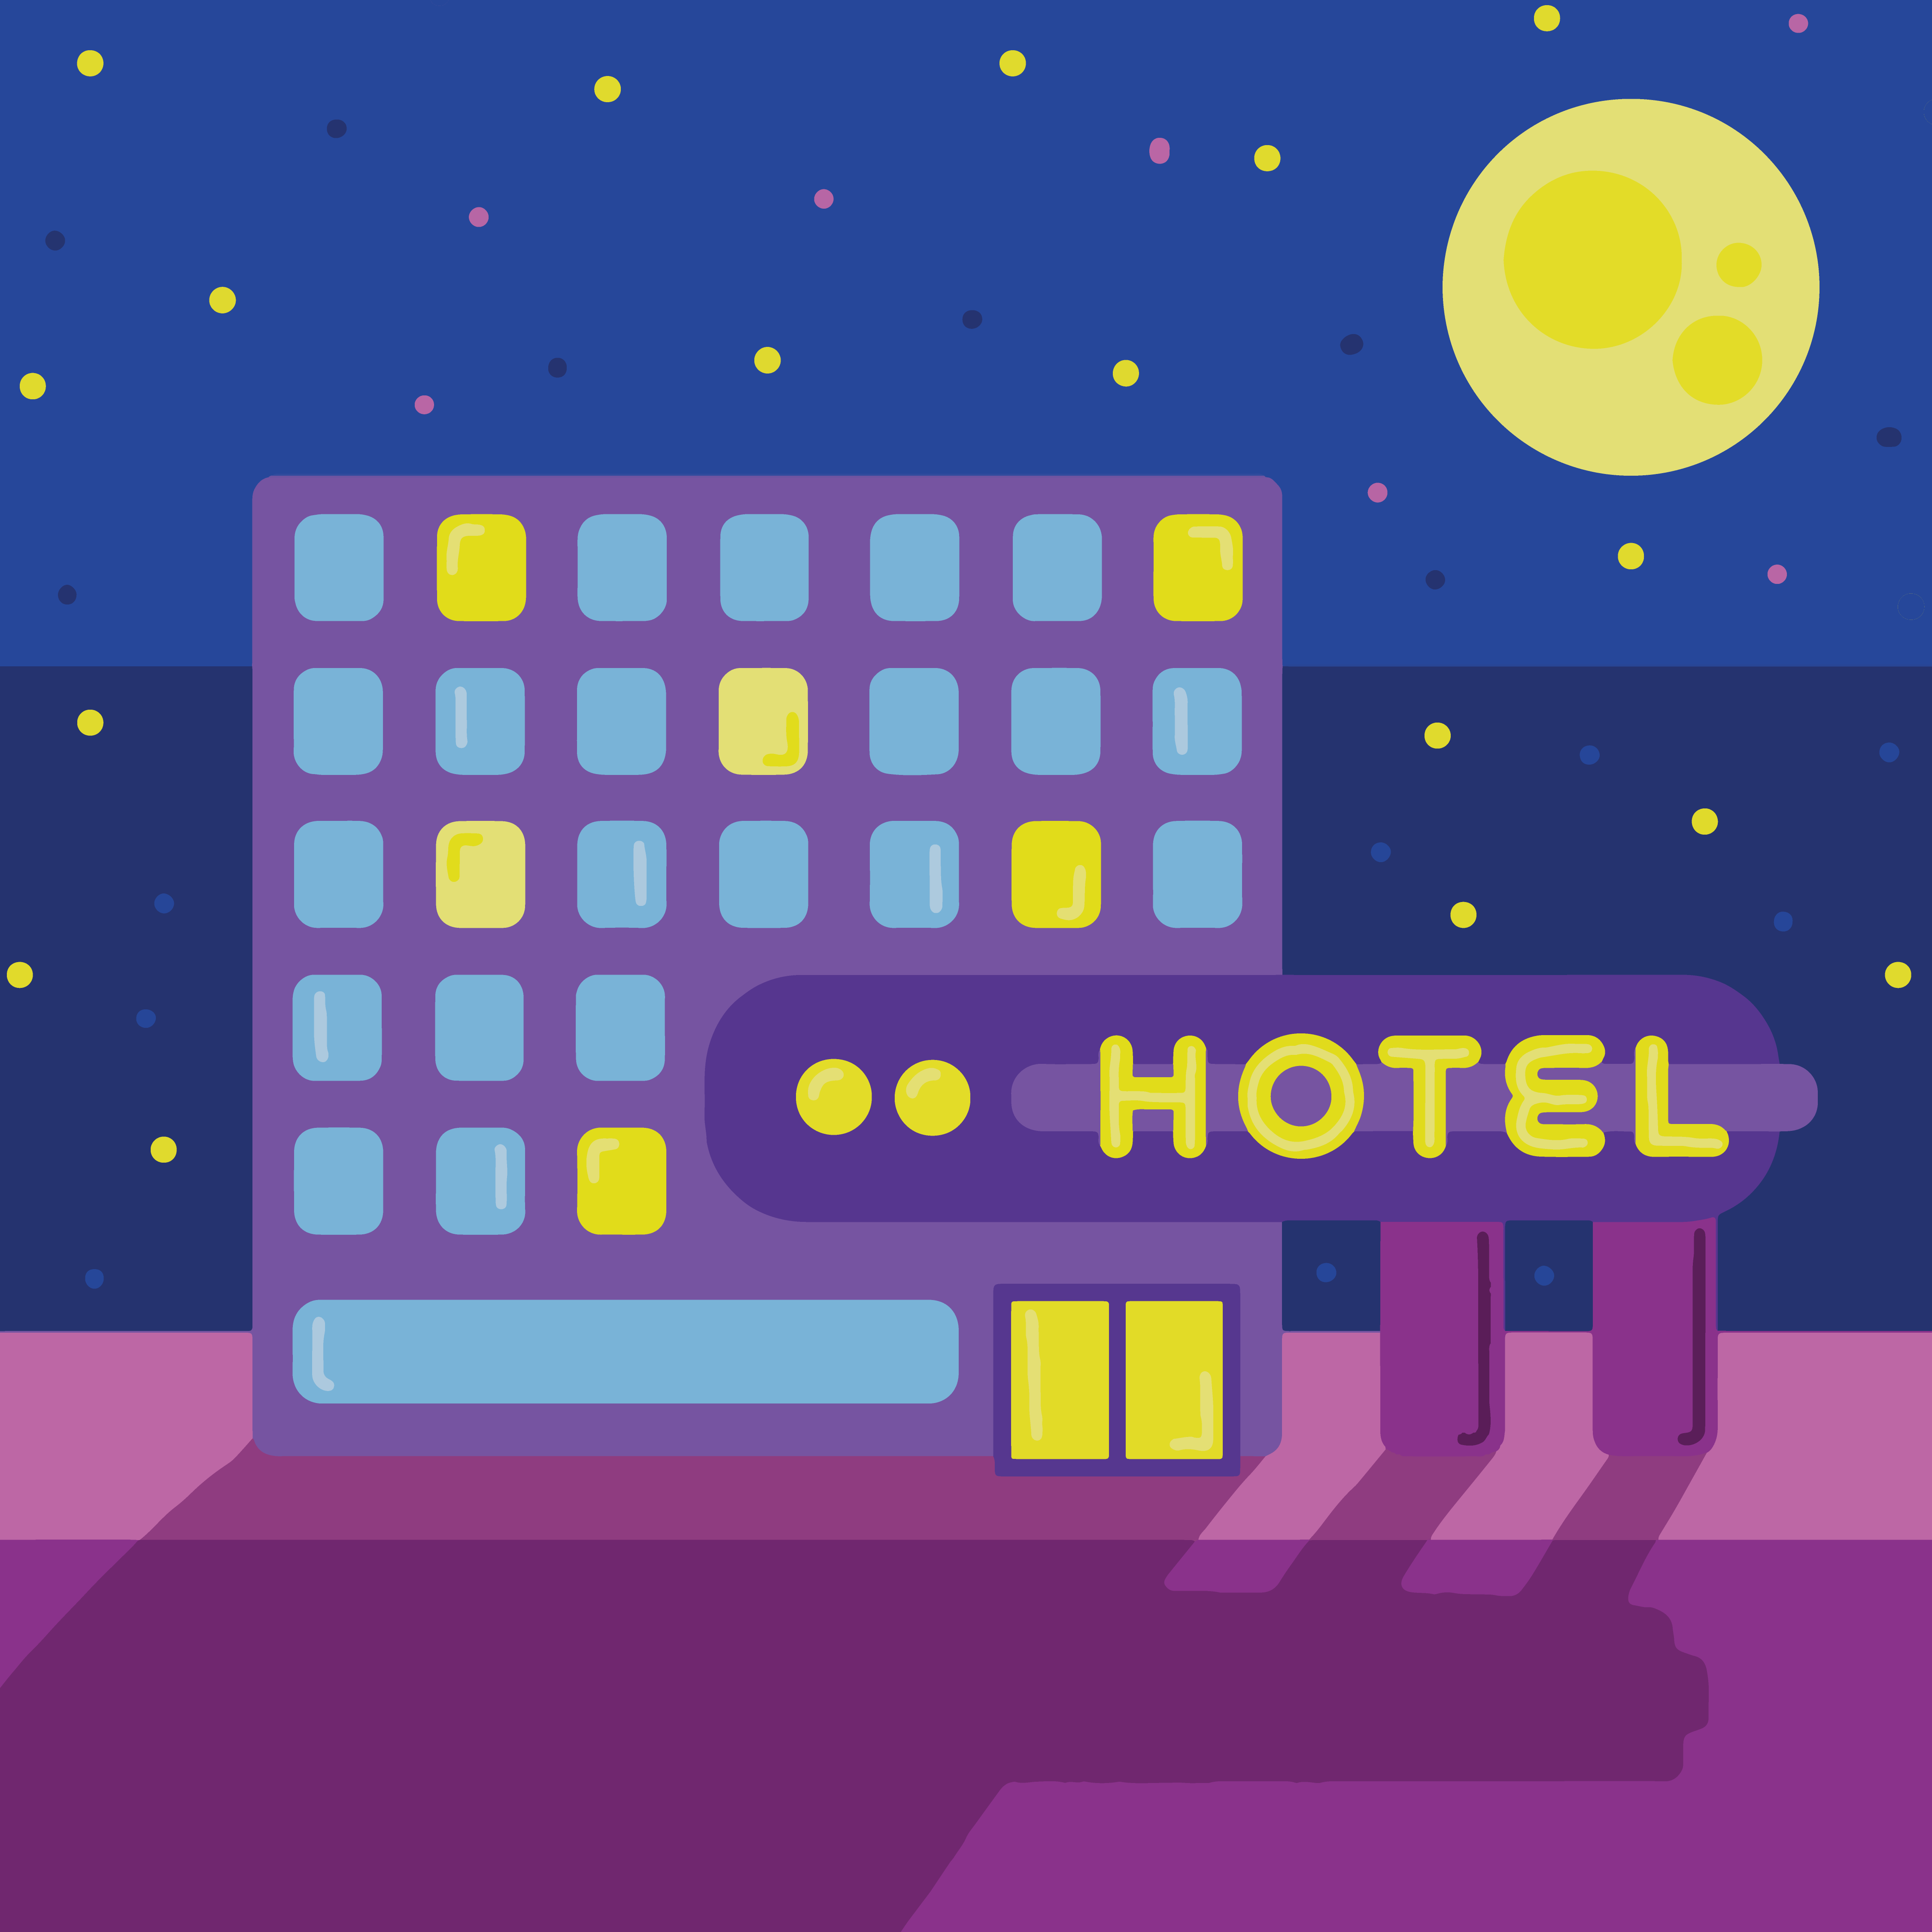 Hotel at Night via Mina Tocalini for use by 360 Magazine